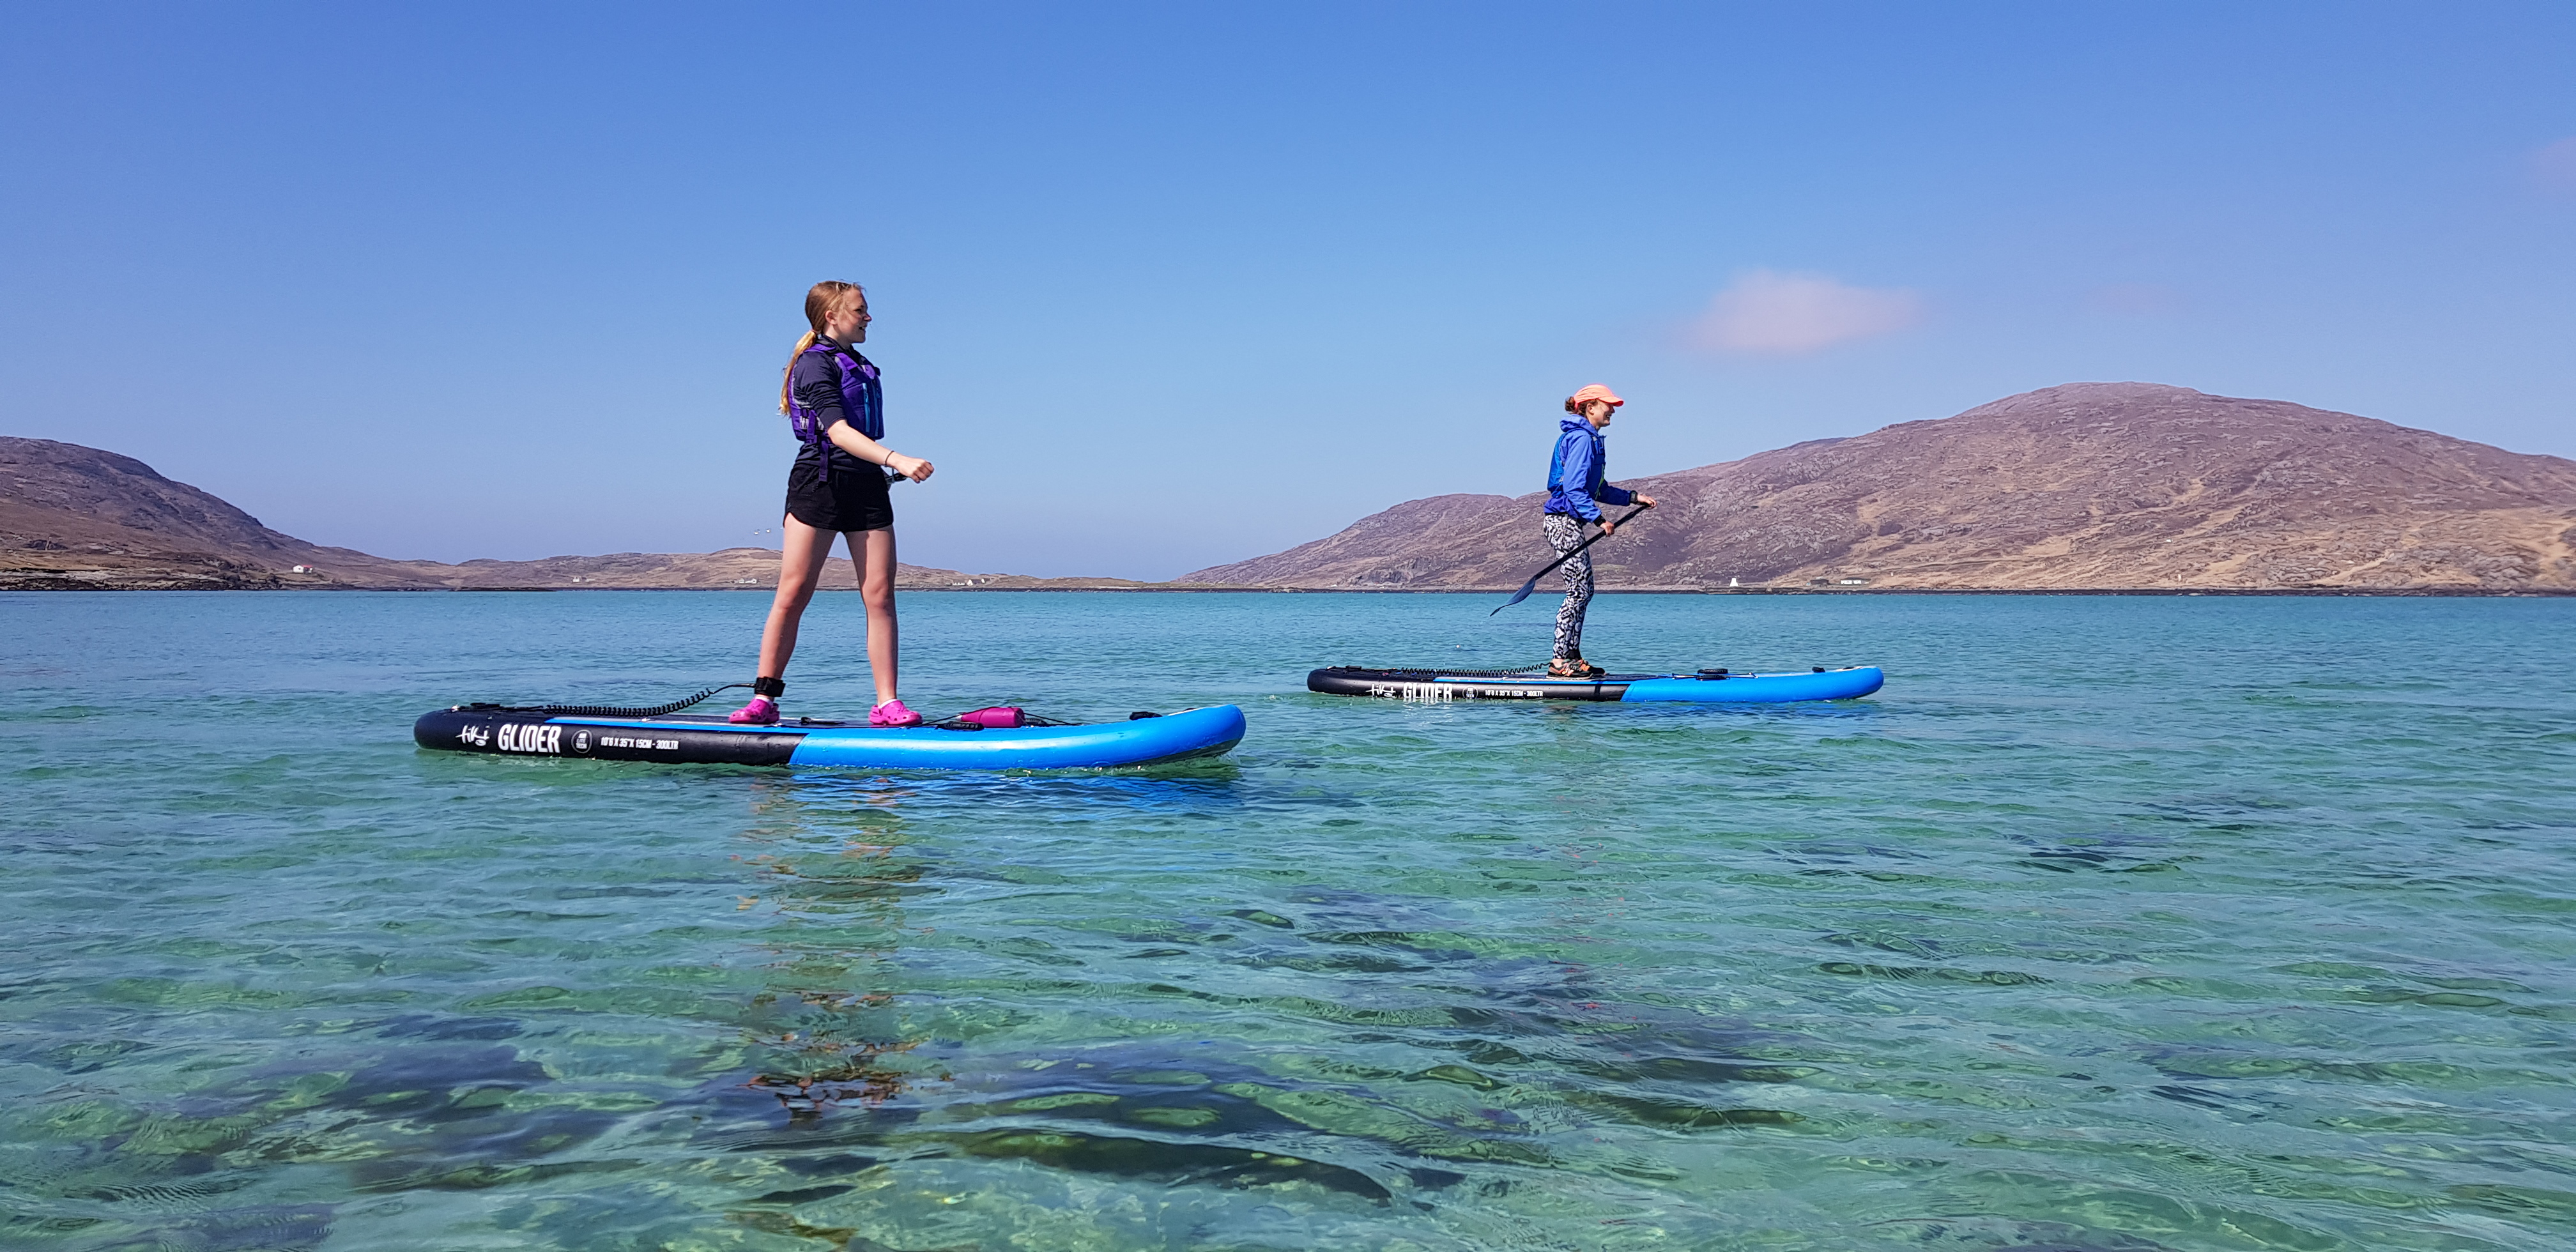 Paddleboard trips, lessons or hire banner image